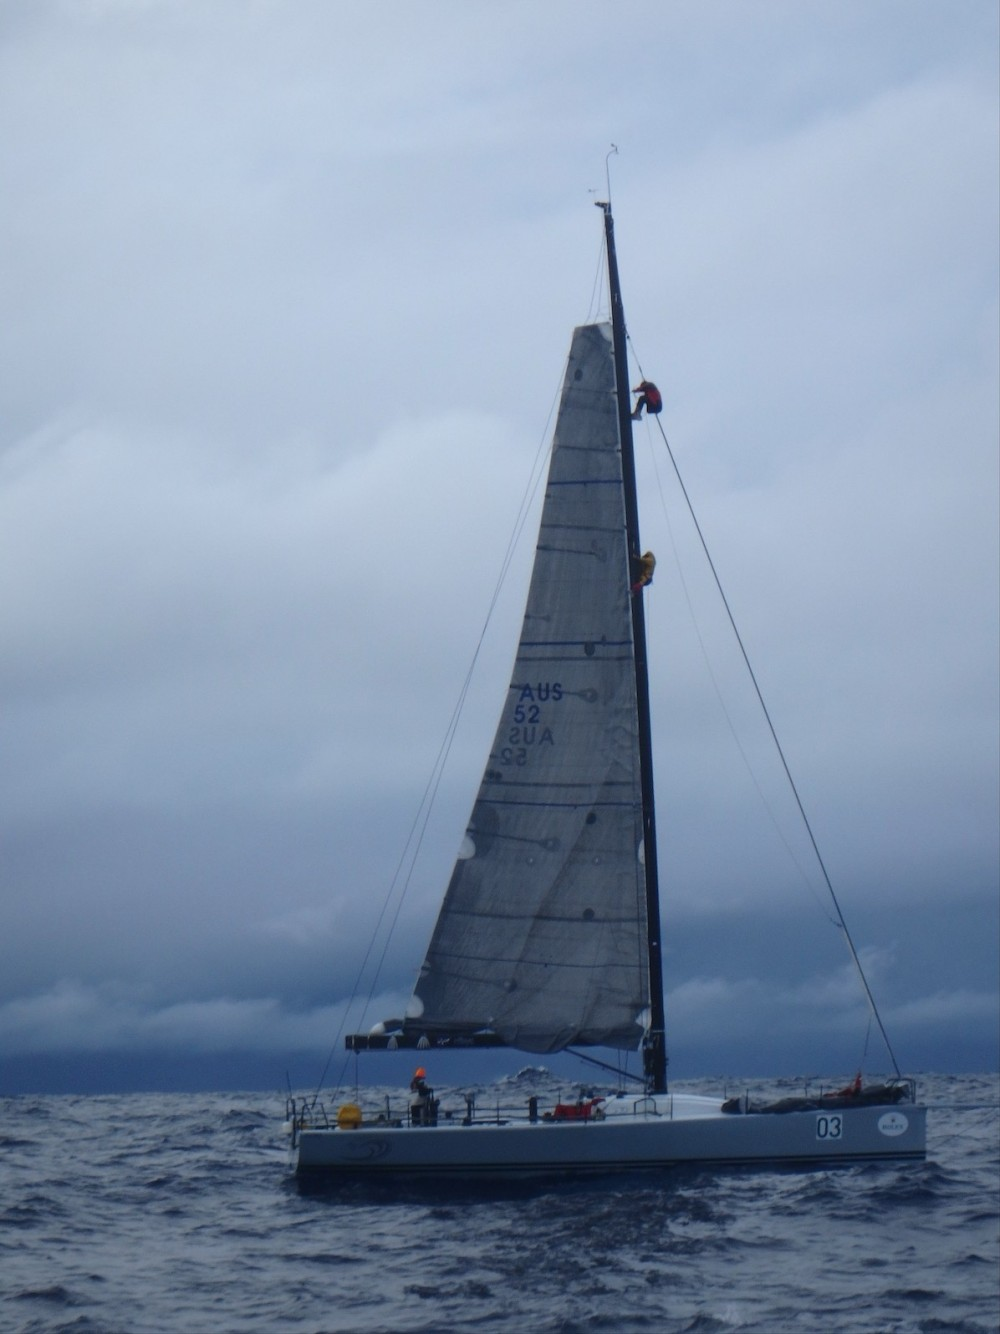 As a crewman in the Clipper Round The World Race, Gavin Reid swam to a stricken yacht and is shown here climbing the mast to help a crewman return safely to the deck.